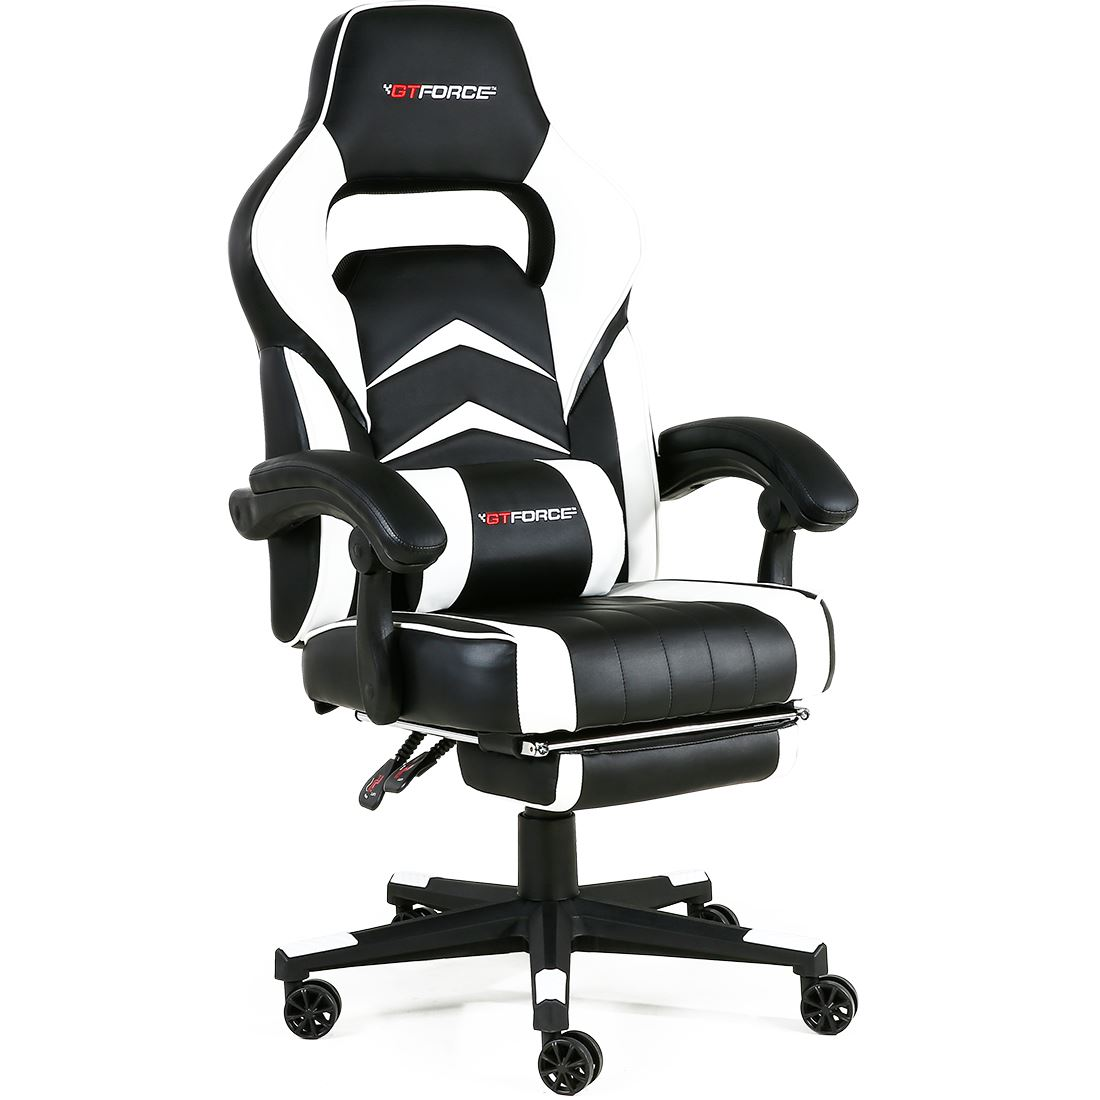 GTFORCE-TURBO-RECLINING-LEATHER-SPORTS-RACING-OFFICE-DESK-CHAIR-GAMING